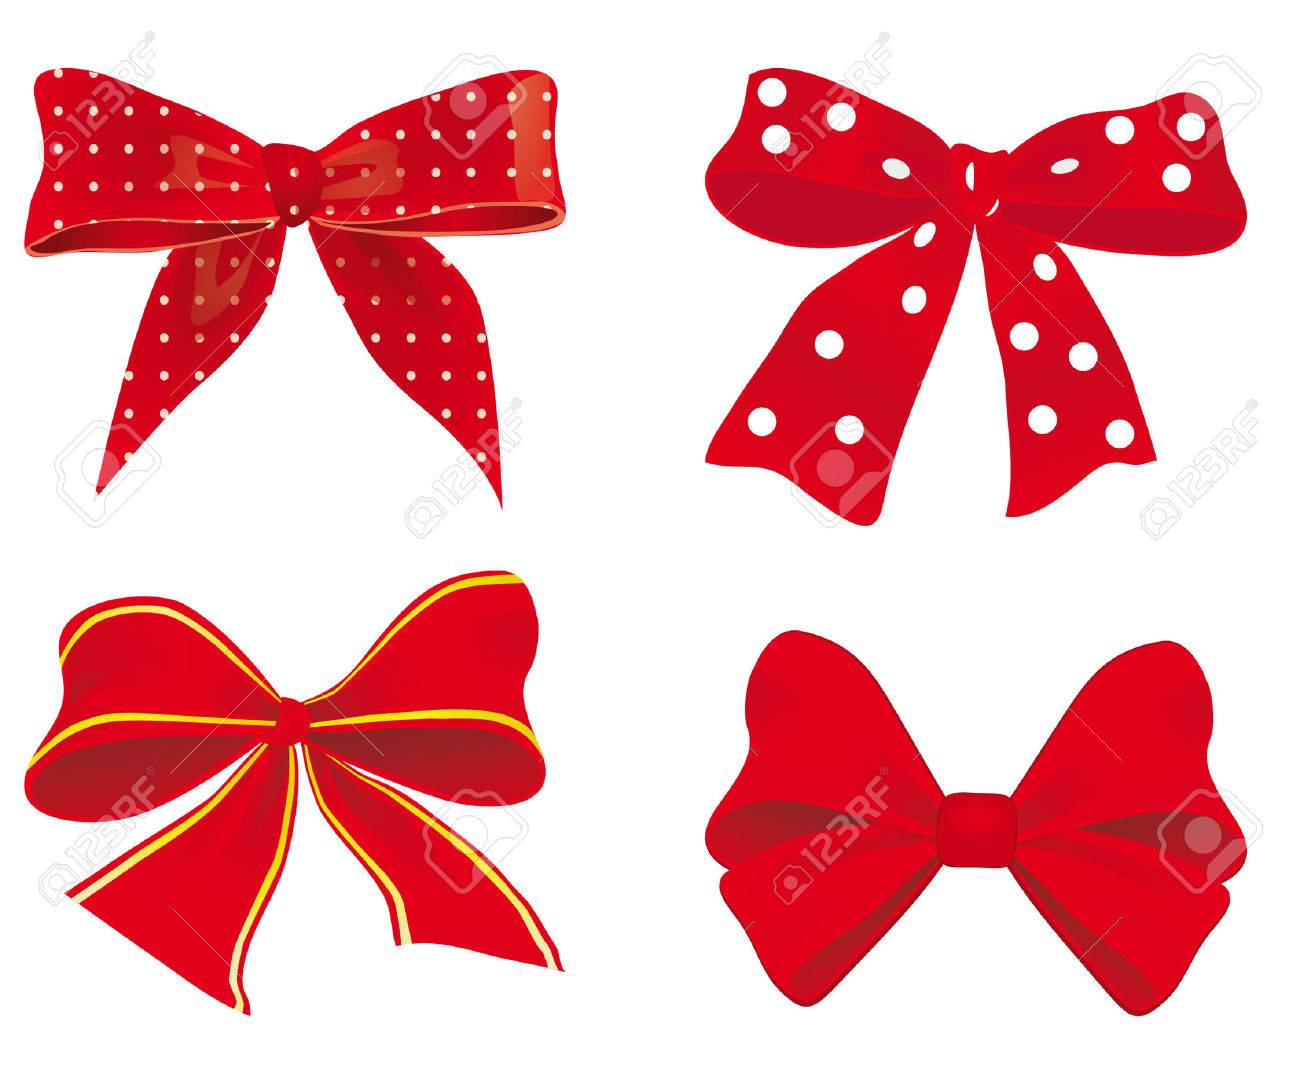 A collection of red ribbons. illustration Stock Vector - 8891376